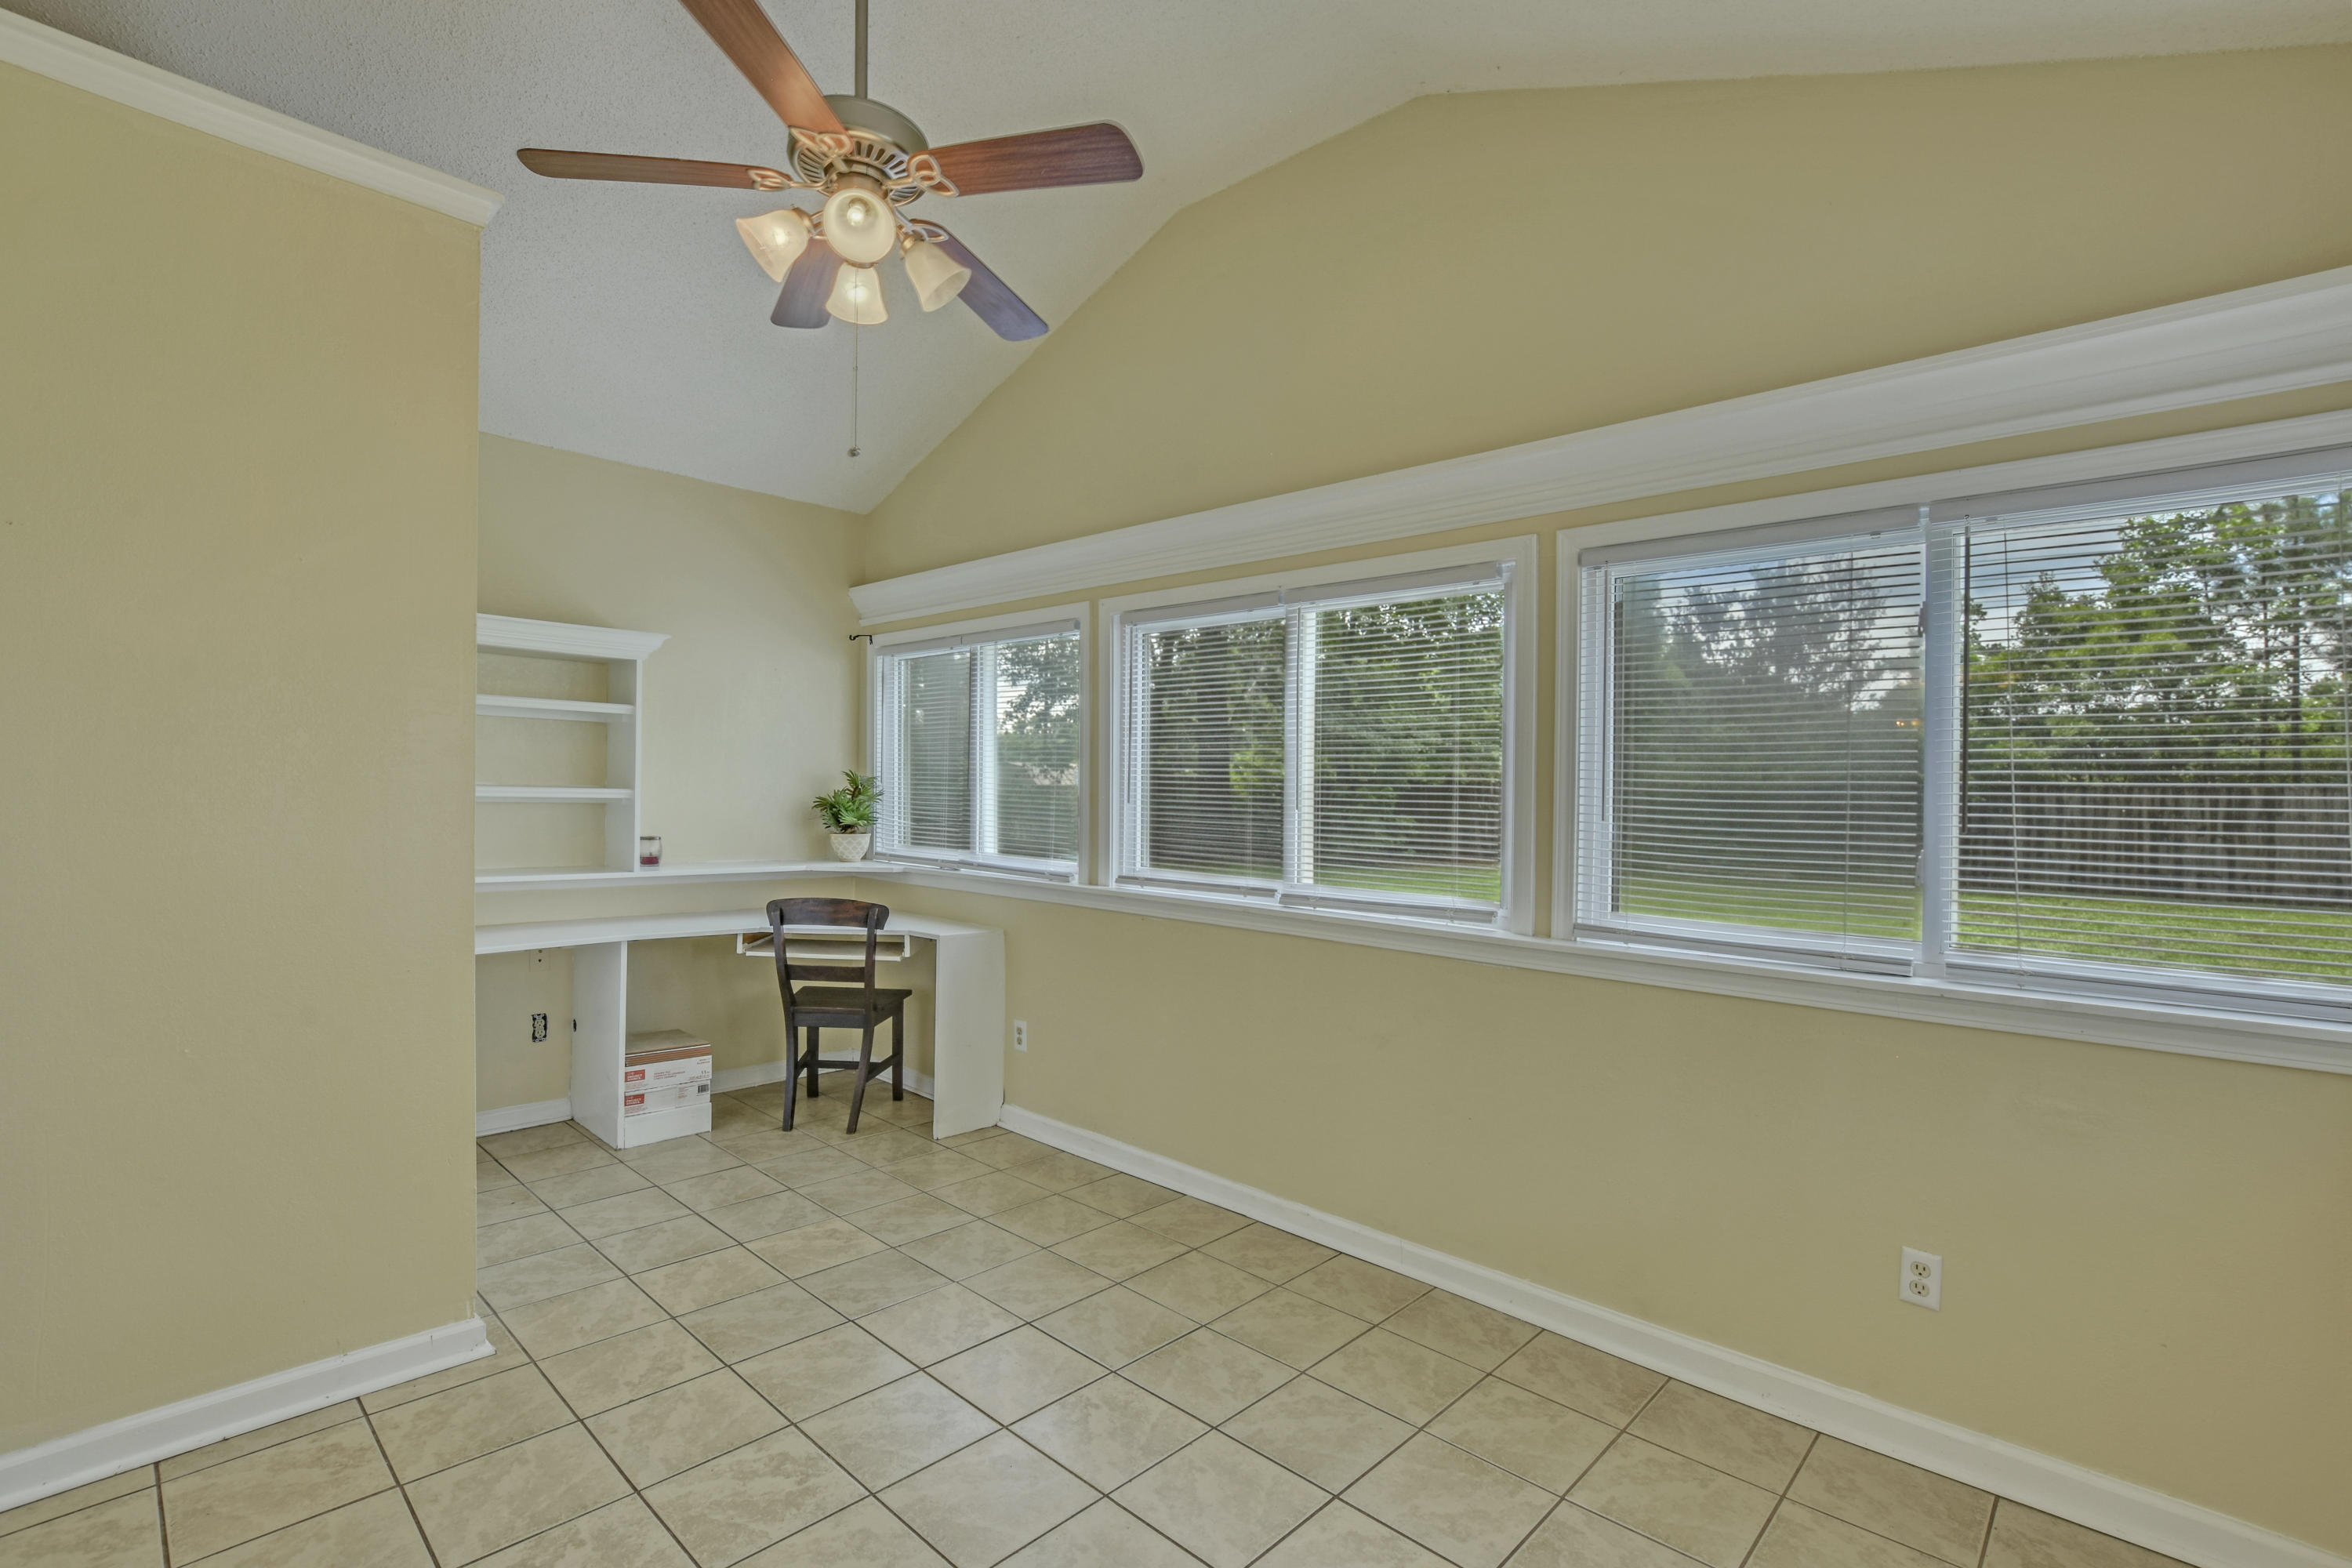 Pineview Terrace Homes For Sale - 232 Holly, Goose Creek, SC - 5